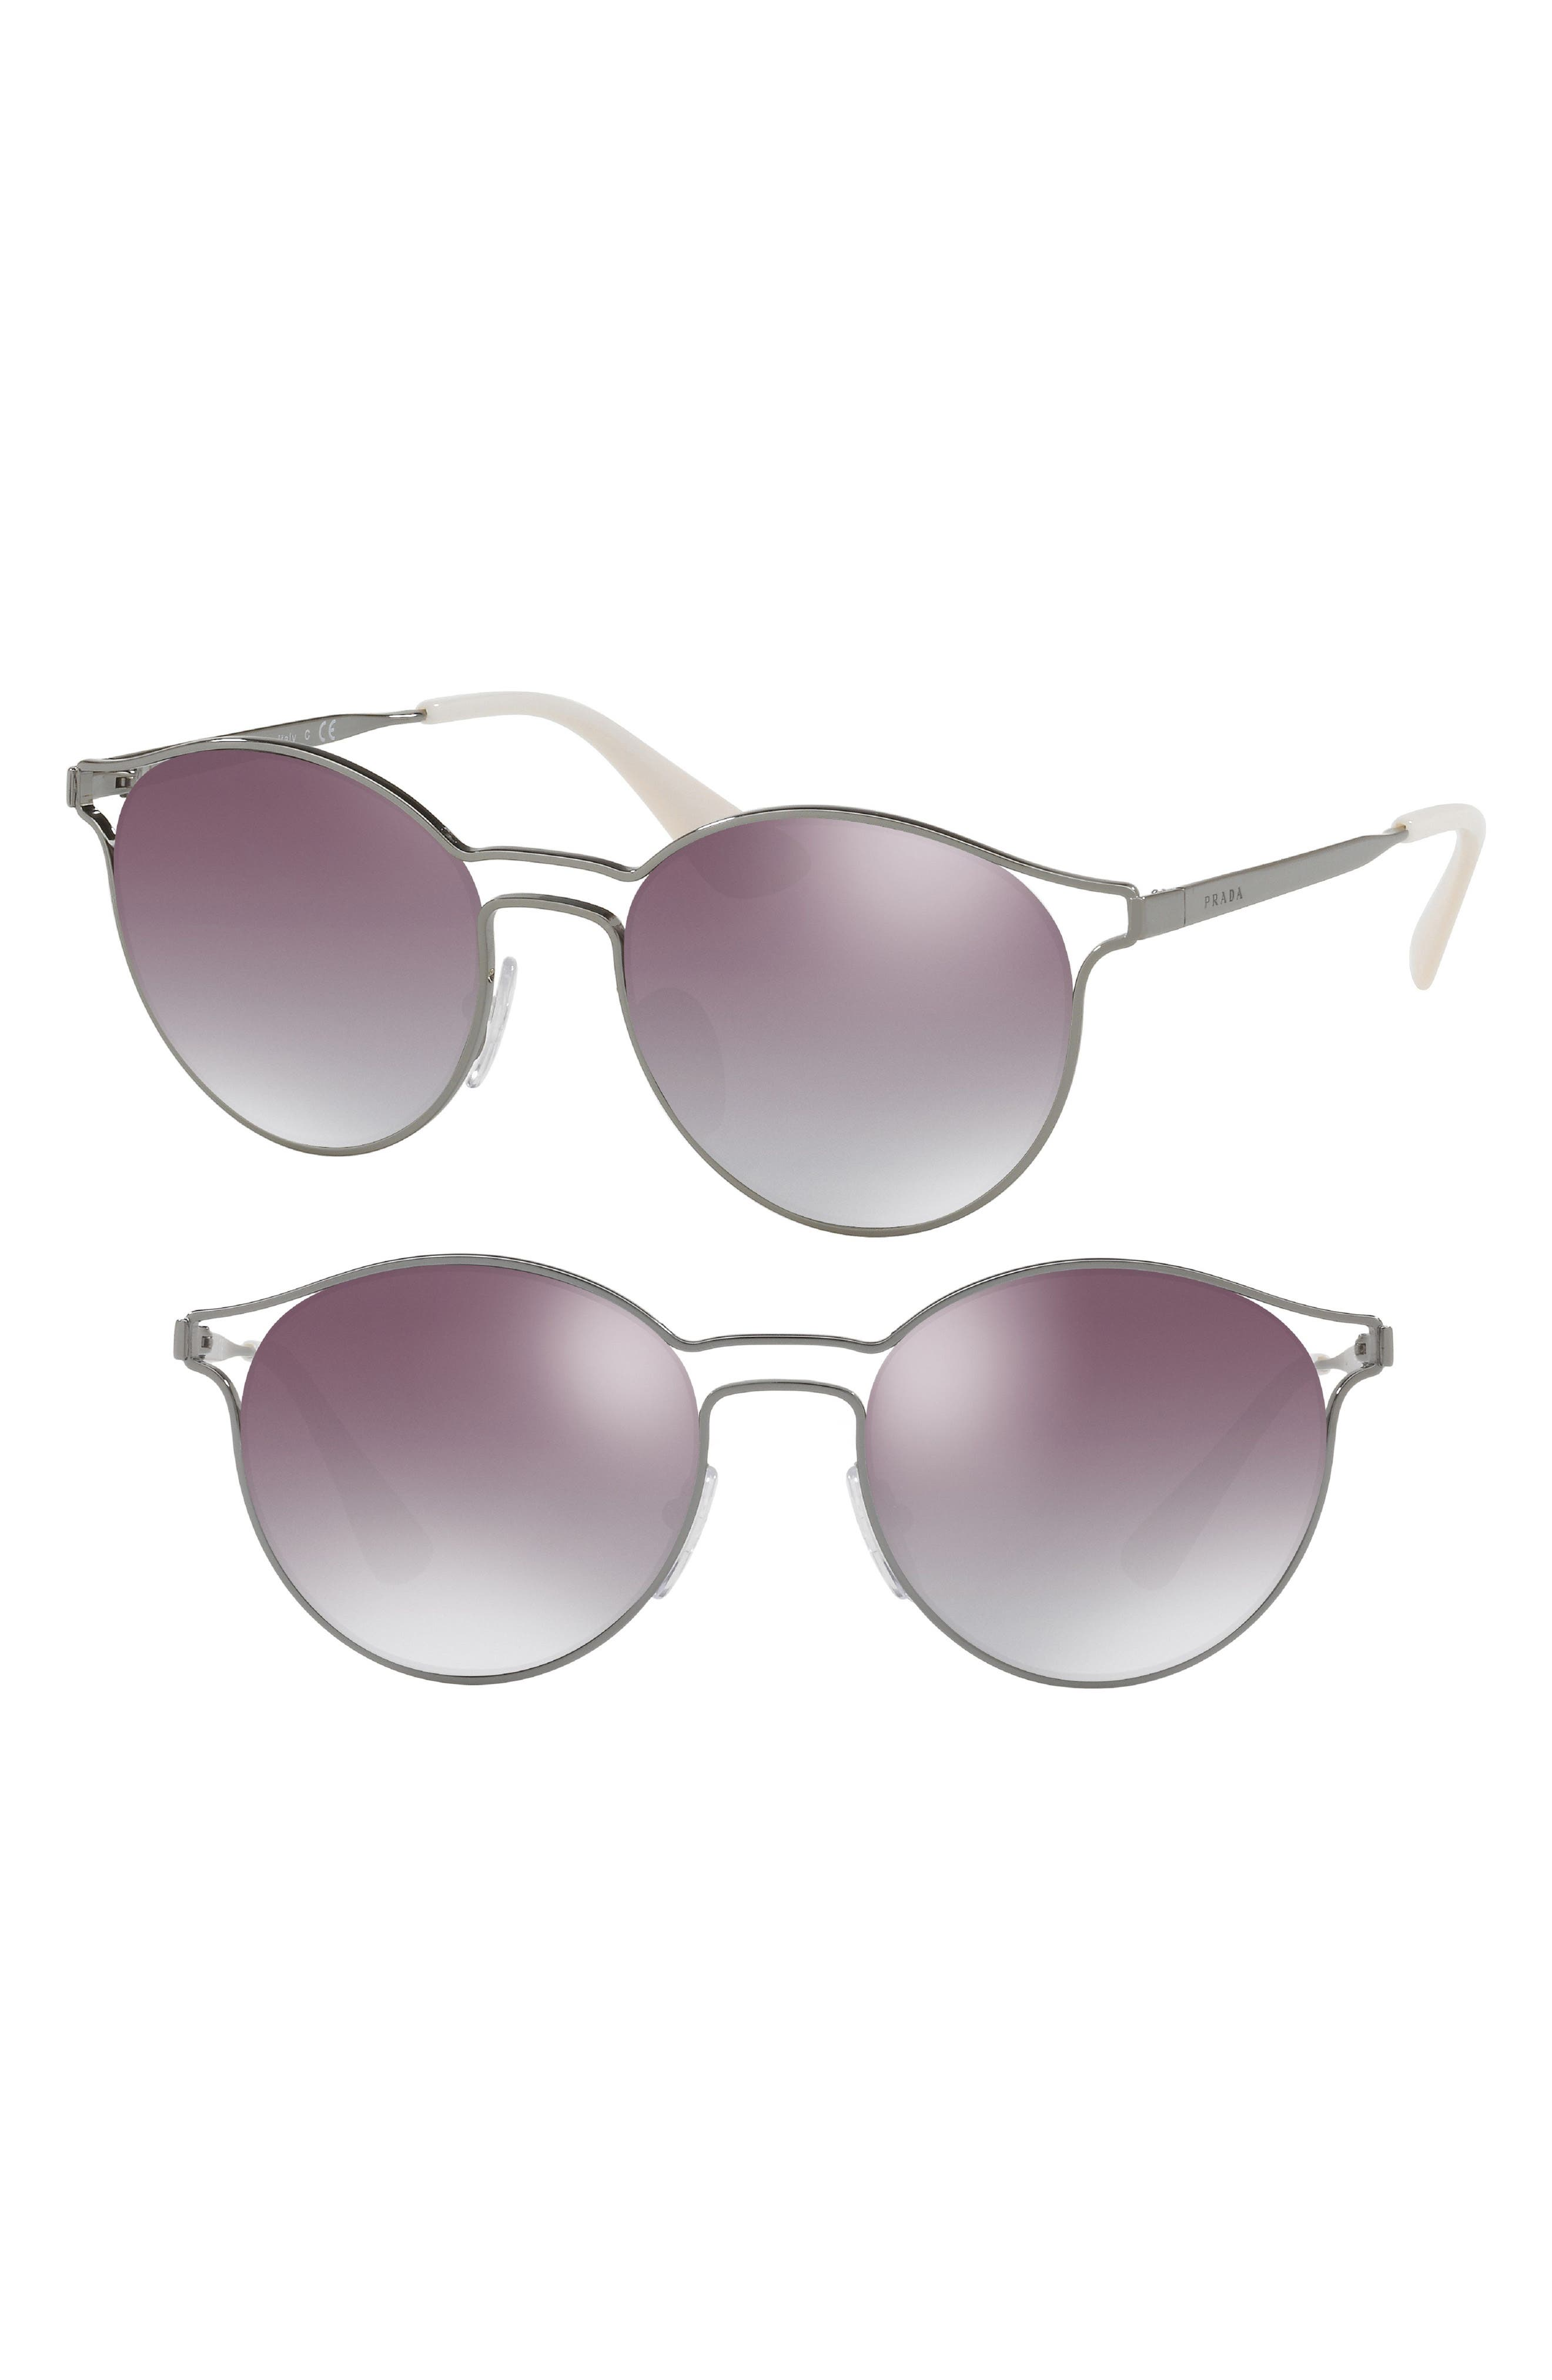 53mm Round Mirrored Sunglasses,                             Alternate thumbnail 2, color,                             062